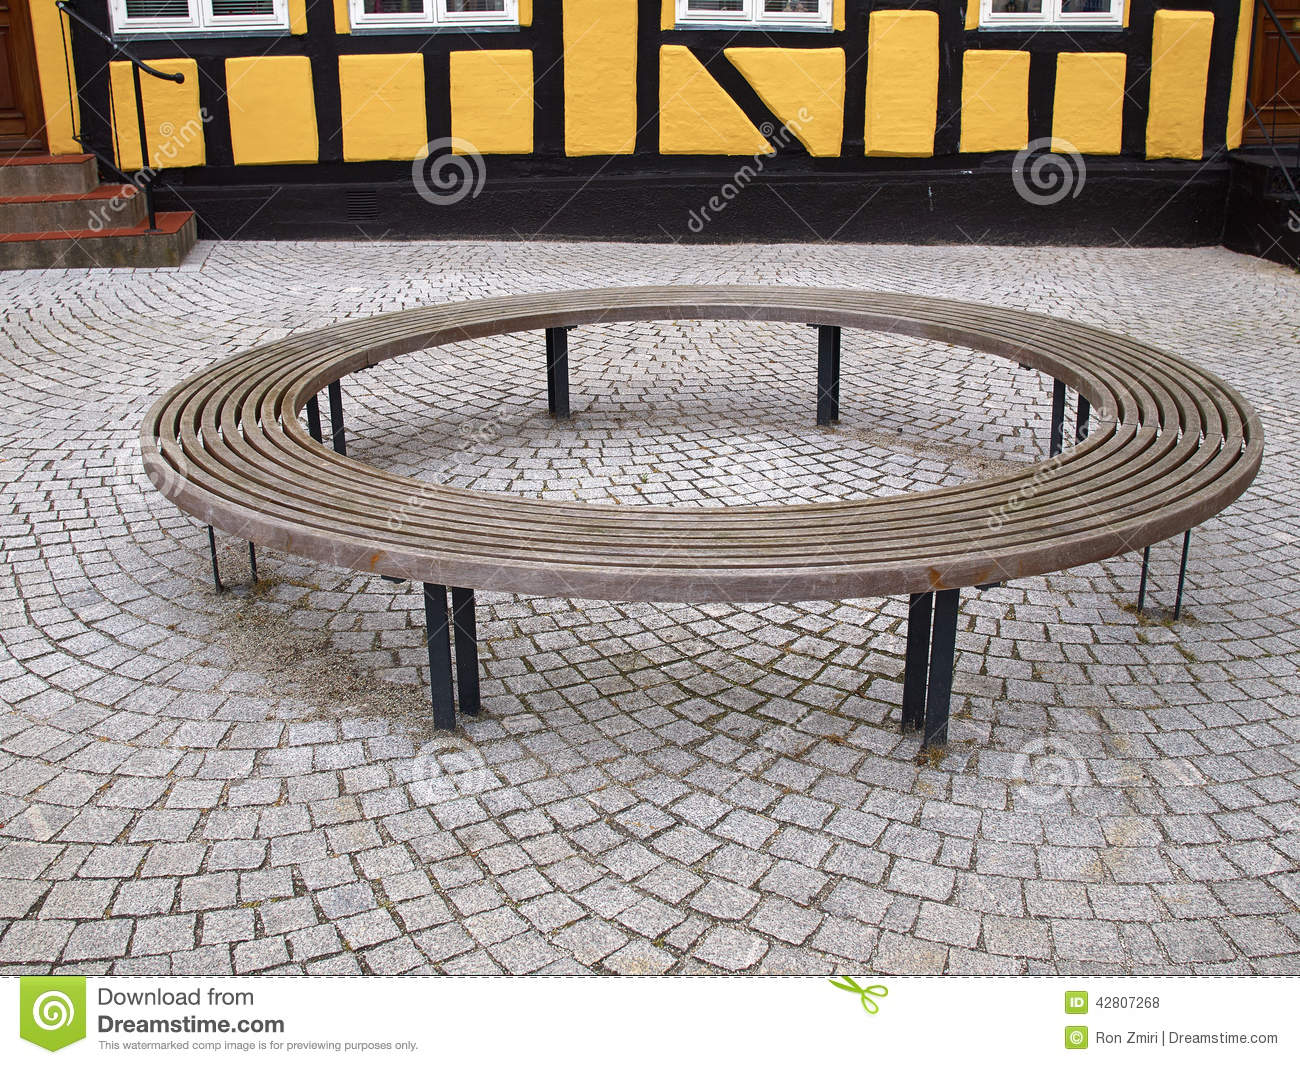 Wooden Round Circular Bench Stock Photo Image 42807268